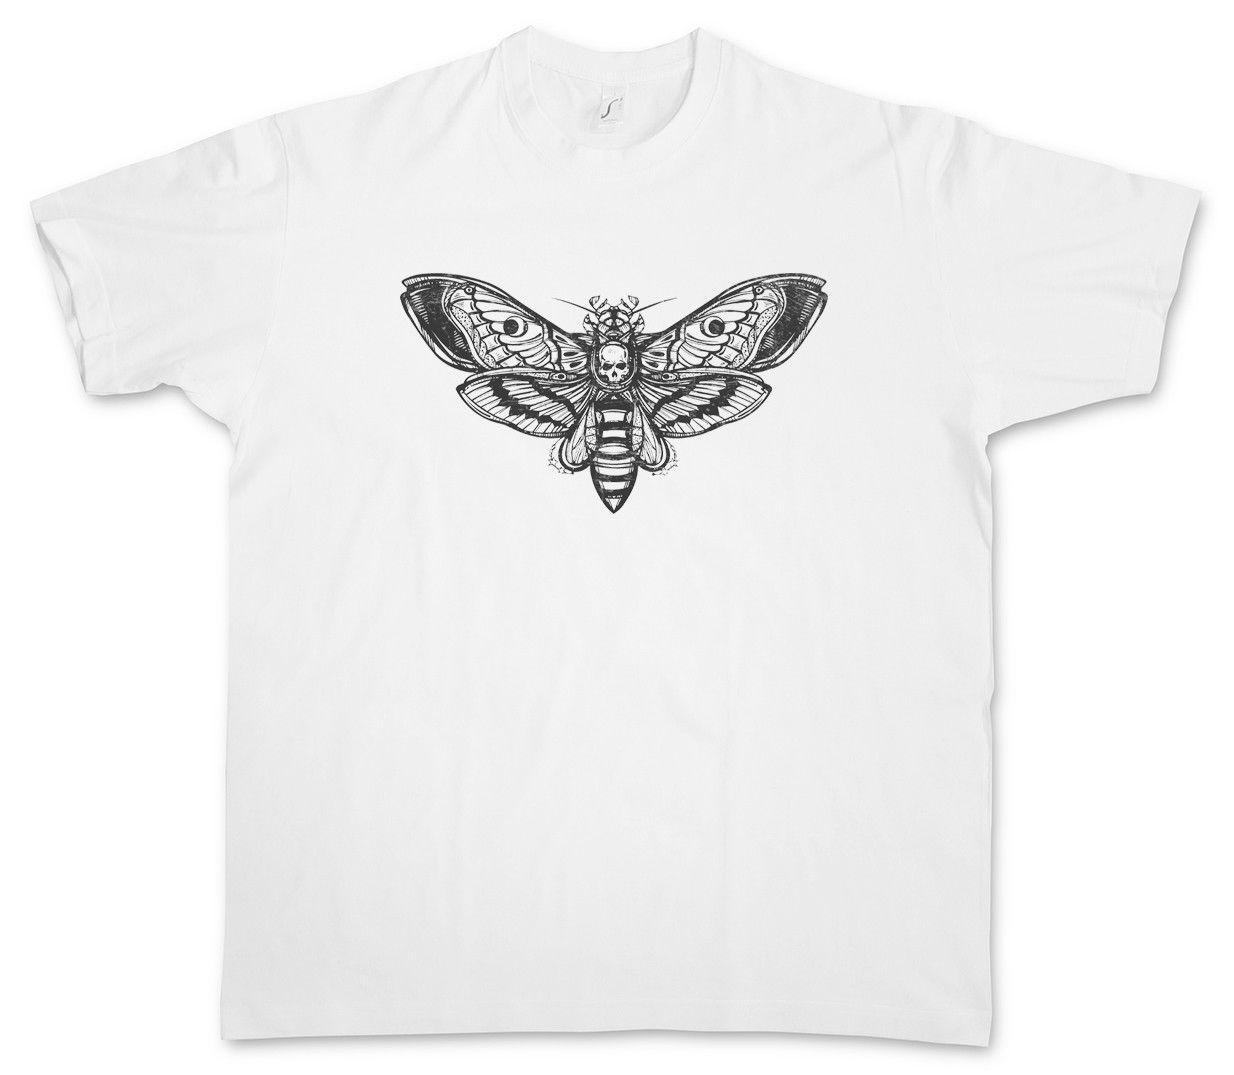 e0207bbb5ce6 DEATH MOTH T SHIRT Dead Insect Insects Entomology Zoology Science Black  White Men Women Unisex Fashion Tshirt Funny Funniest T Shirts Mens Funny T  Shirts ...